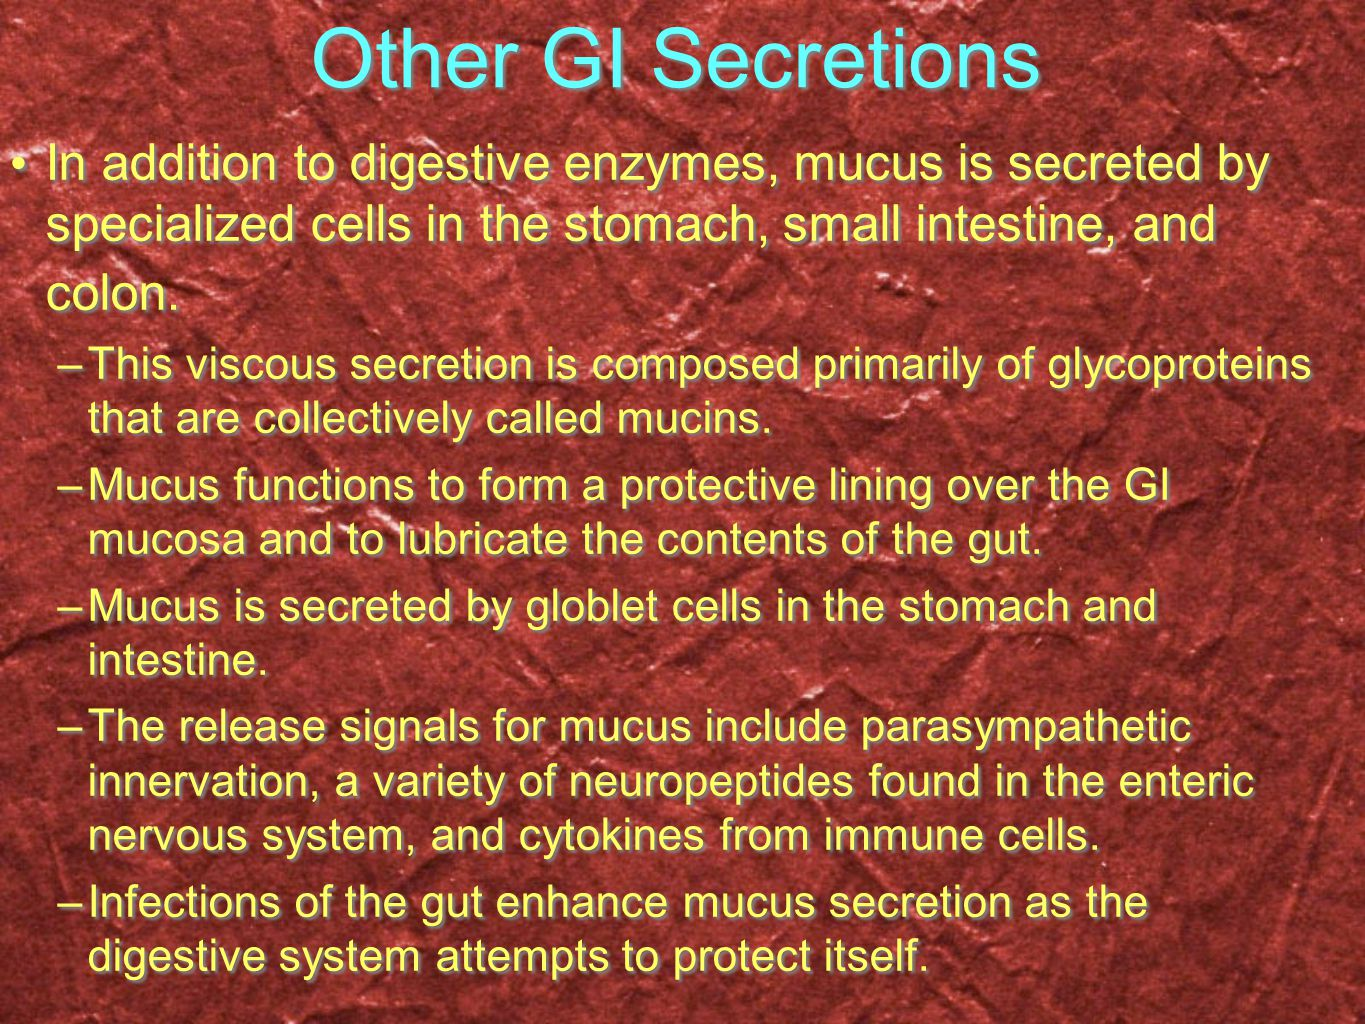 Other GI Secretions In addition to digestive enzymes, mucus is secreted by specialized cells in the stomach, small intestine, and colon. –This viscous